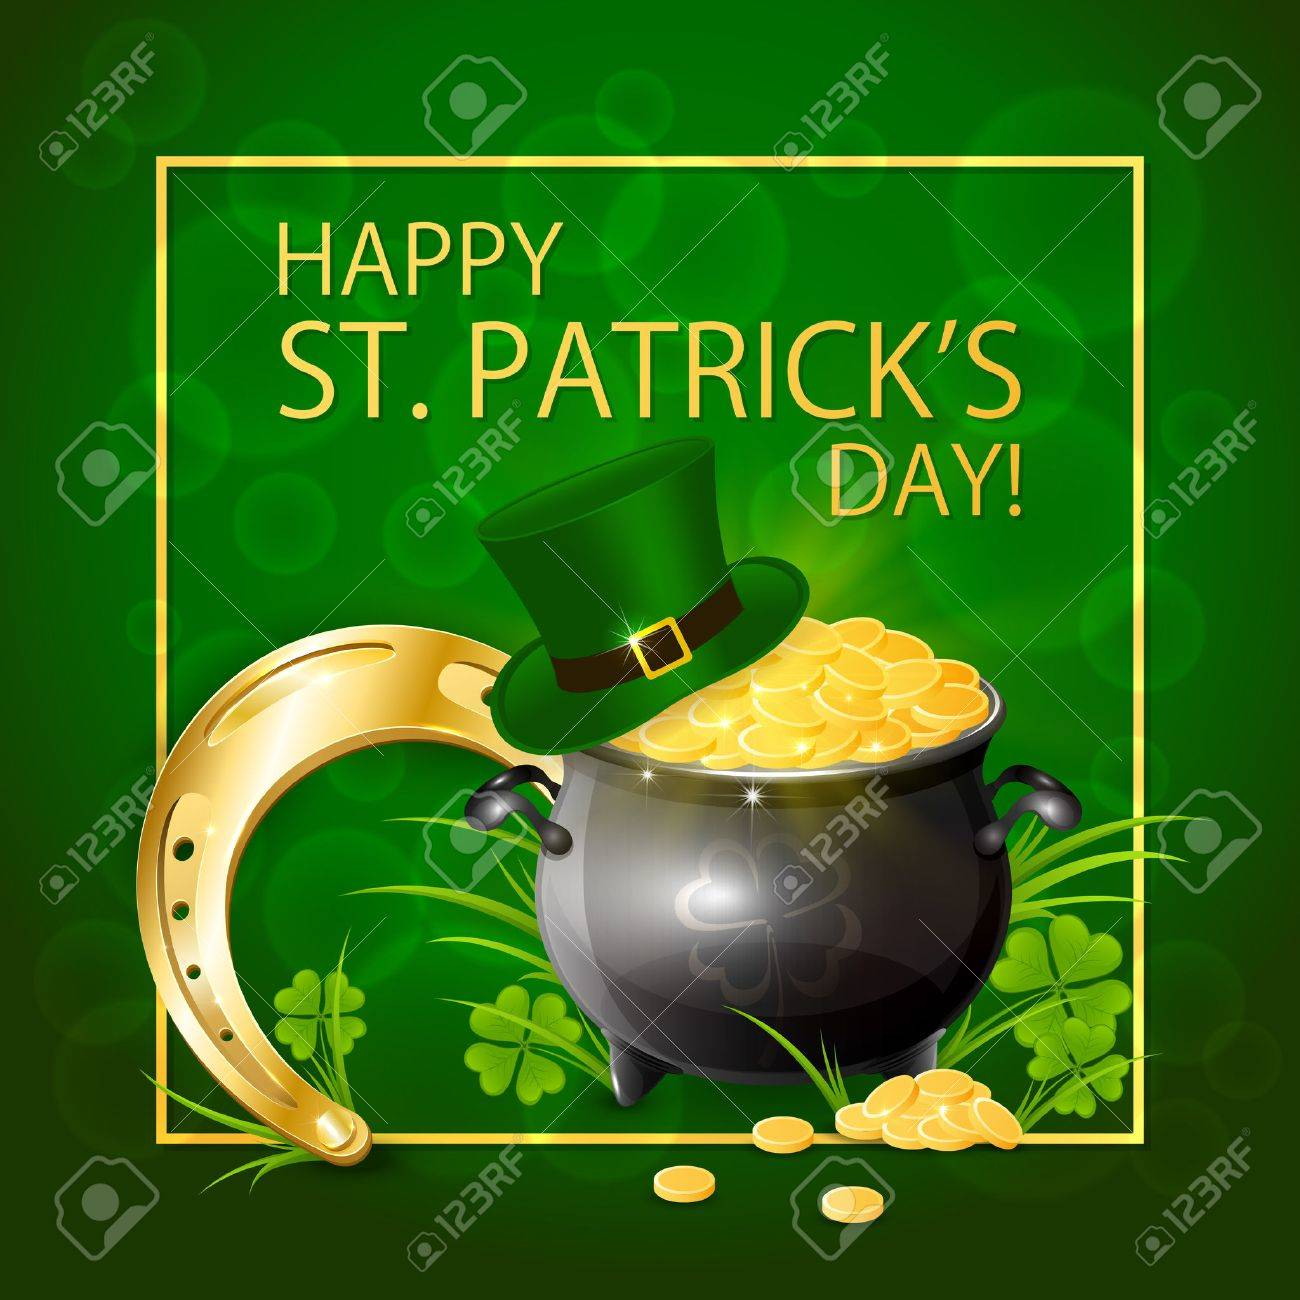 Horseshoe with pot of gold and hat of leprechaun in clover on green background, illustration. - 53289319